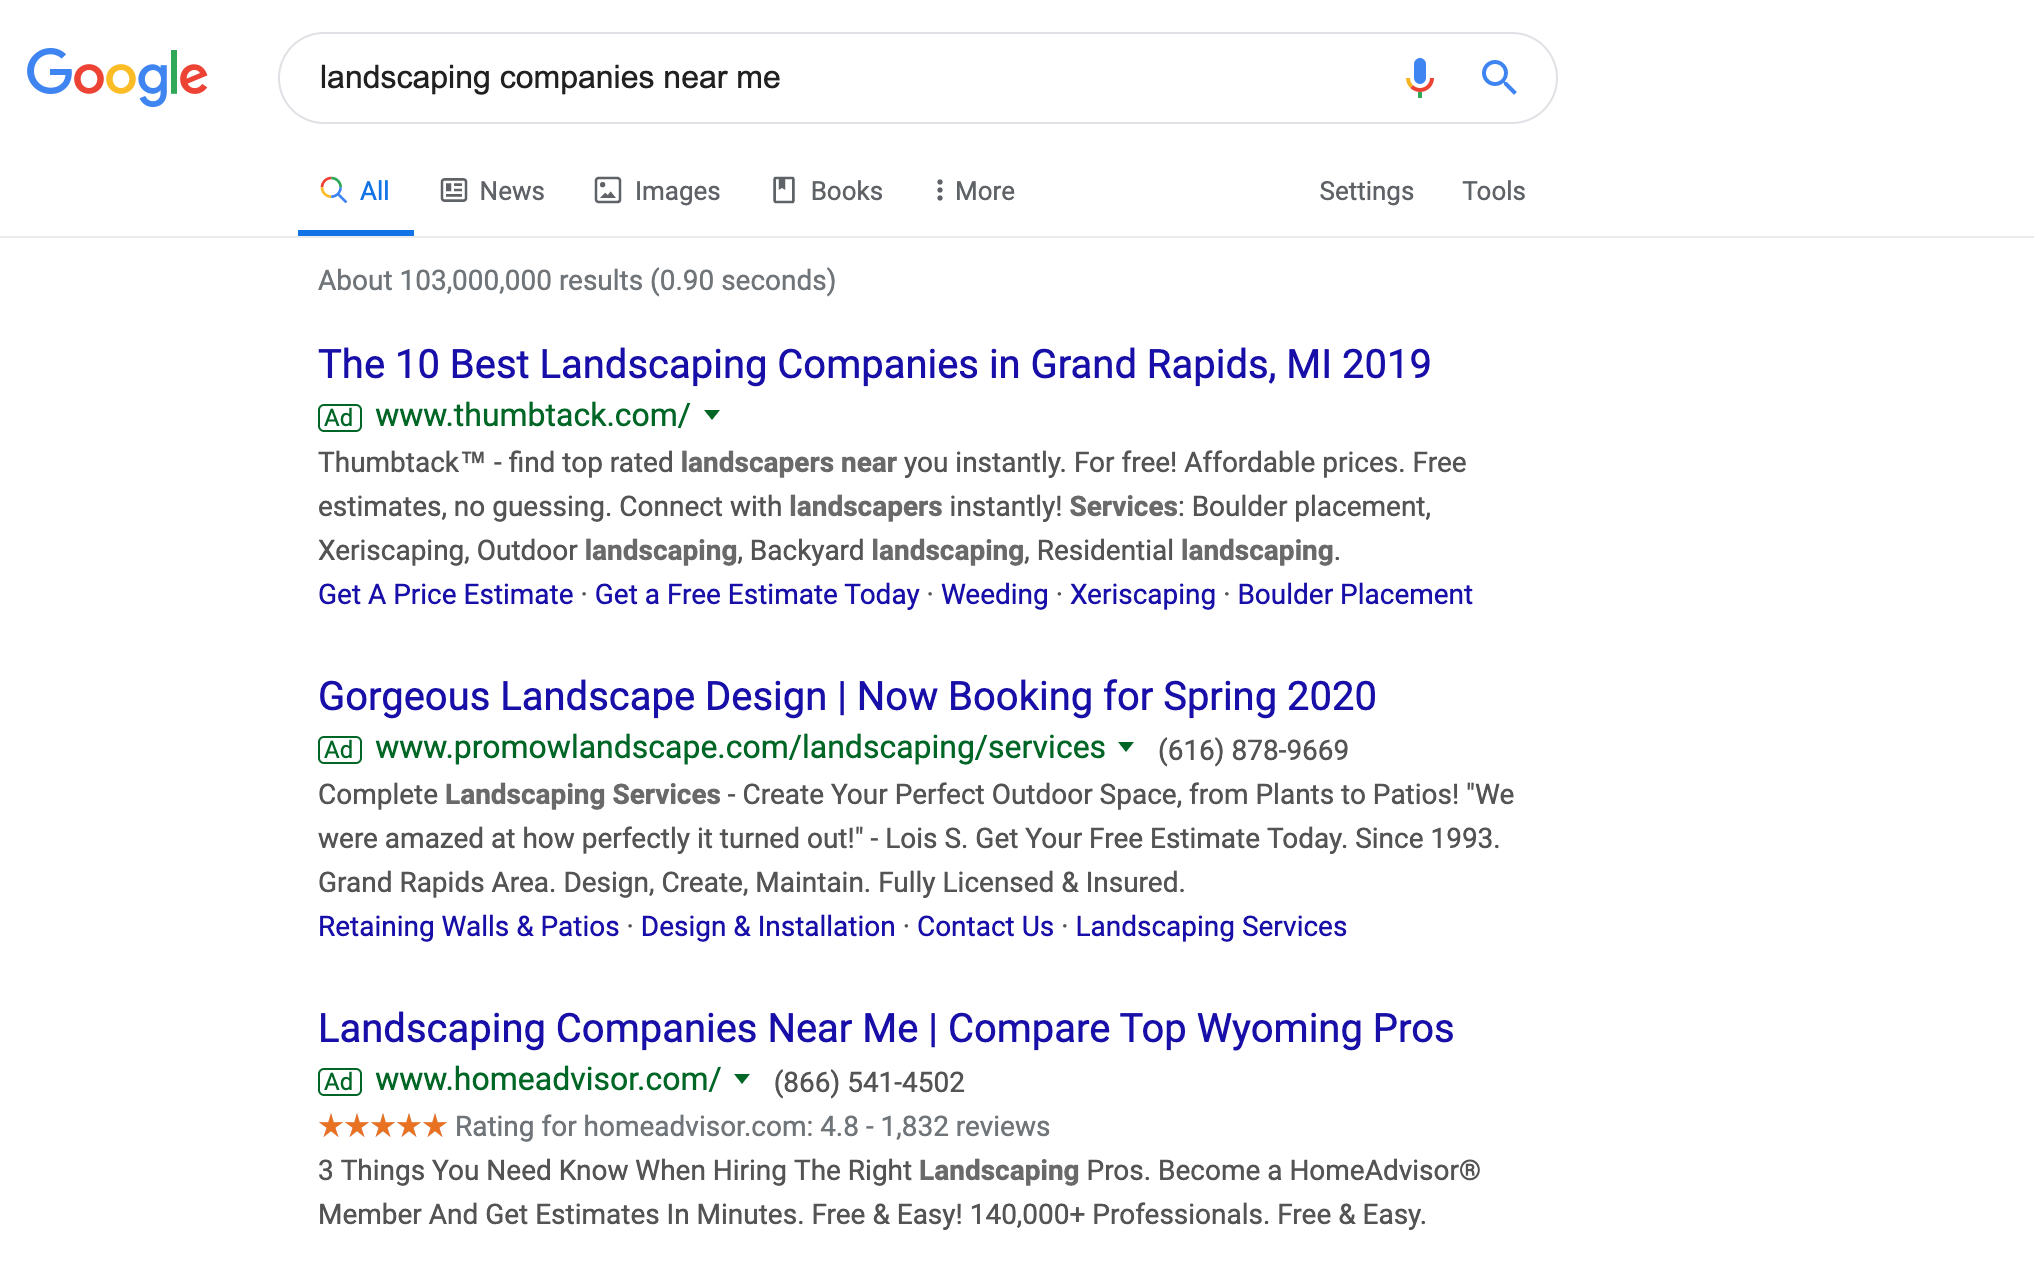 landscaping company near me search engine results page